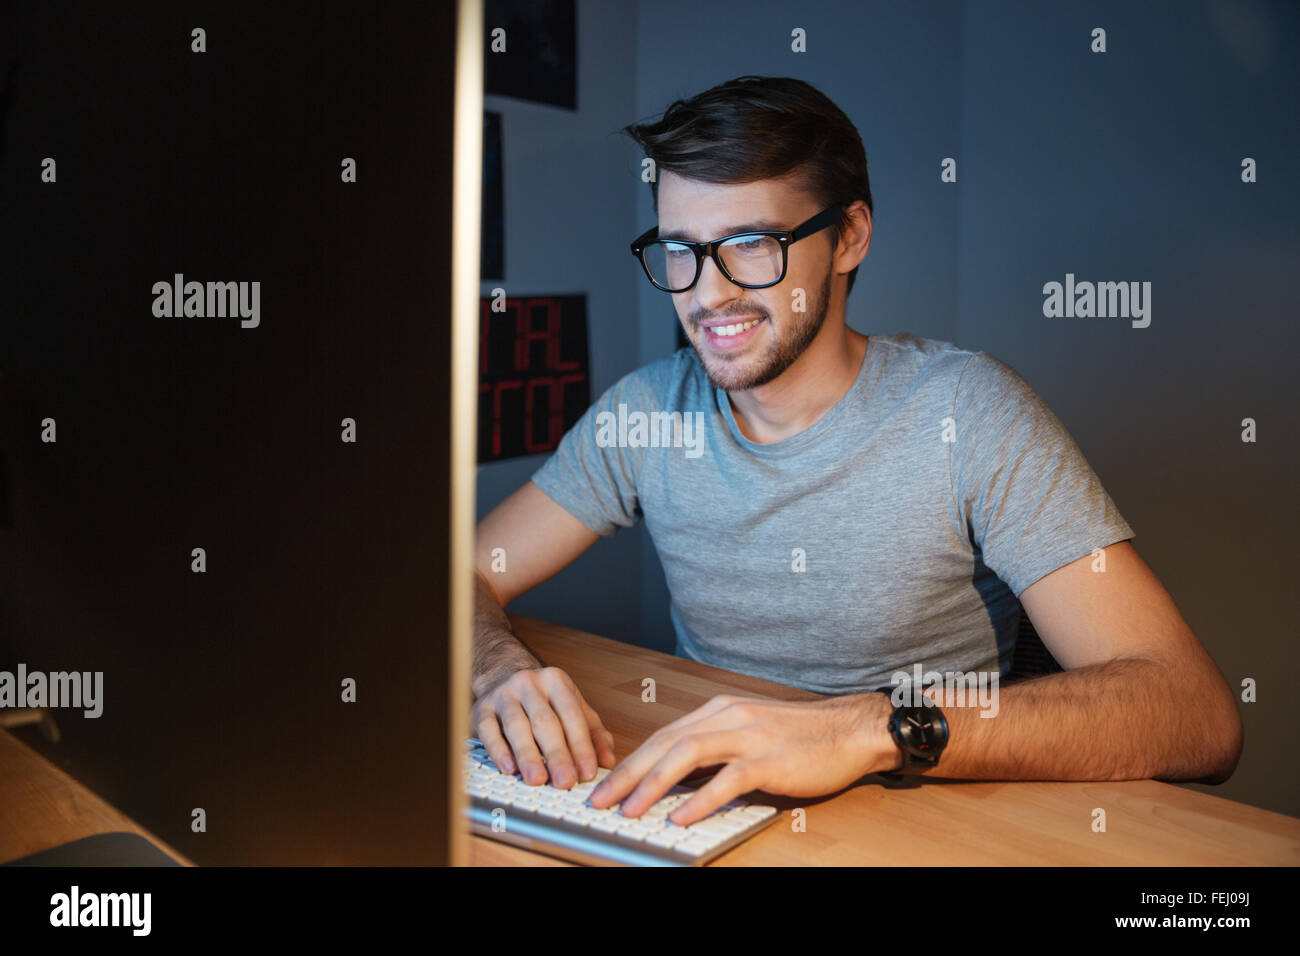 Happy attractive young man in glasses sitting and typing on computer at home - Stock Image